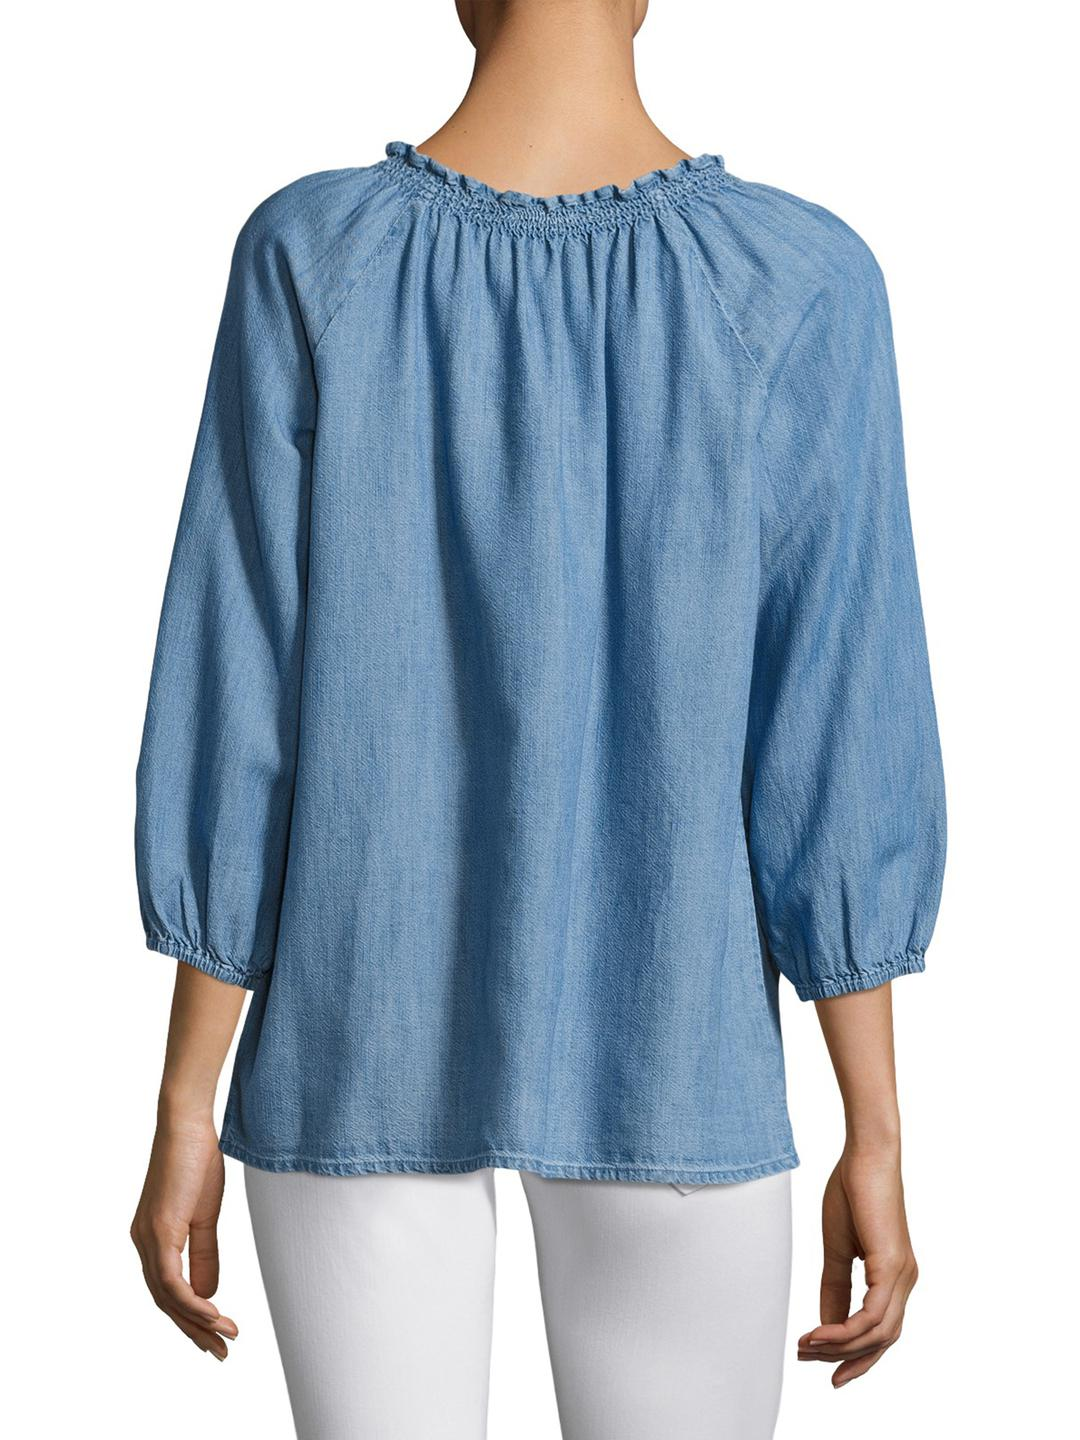 d906a27b0d419 Lyst - Joie Scarlina Cotton Blouse in Blue